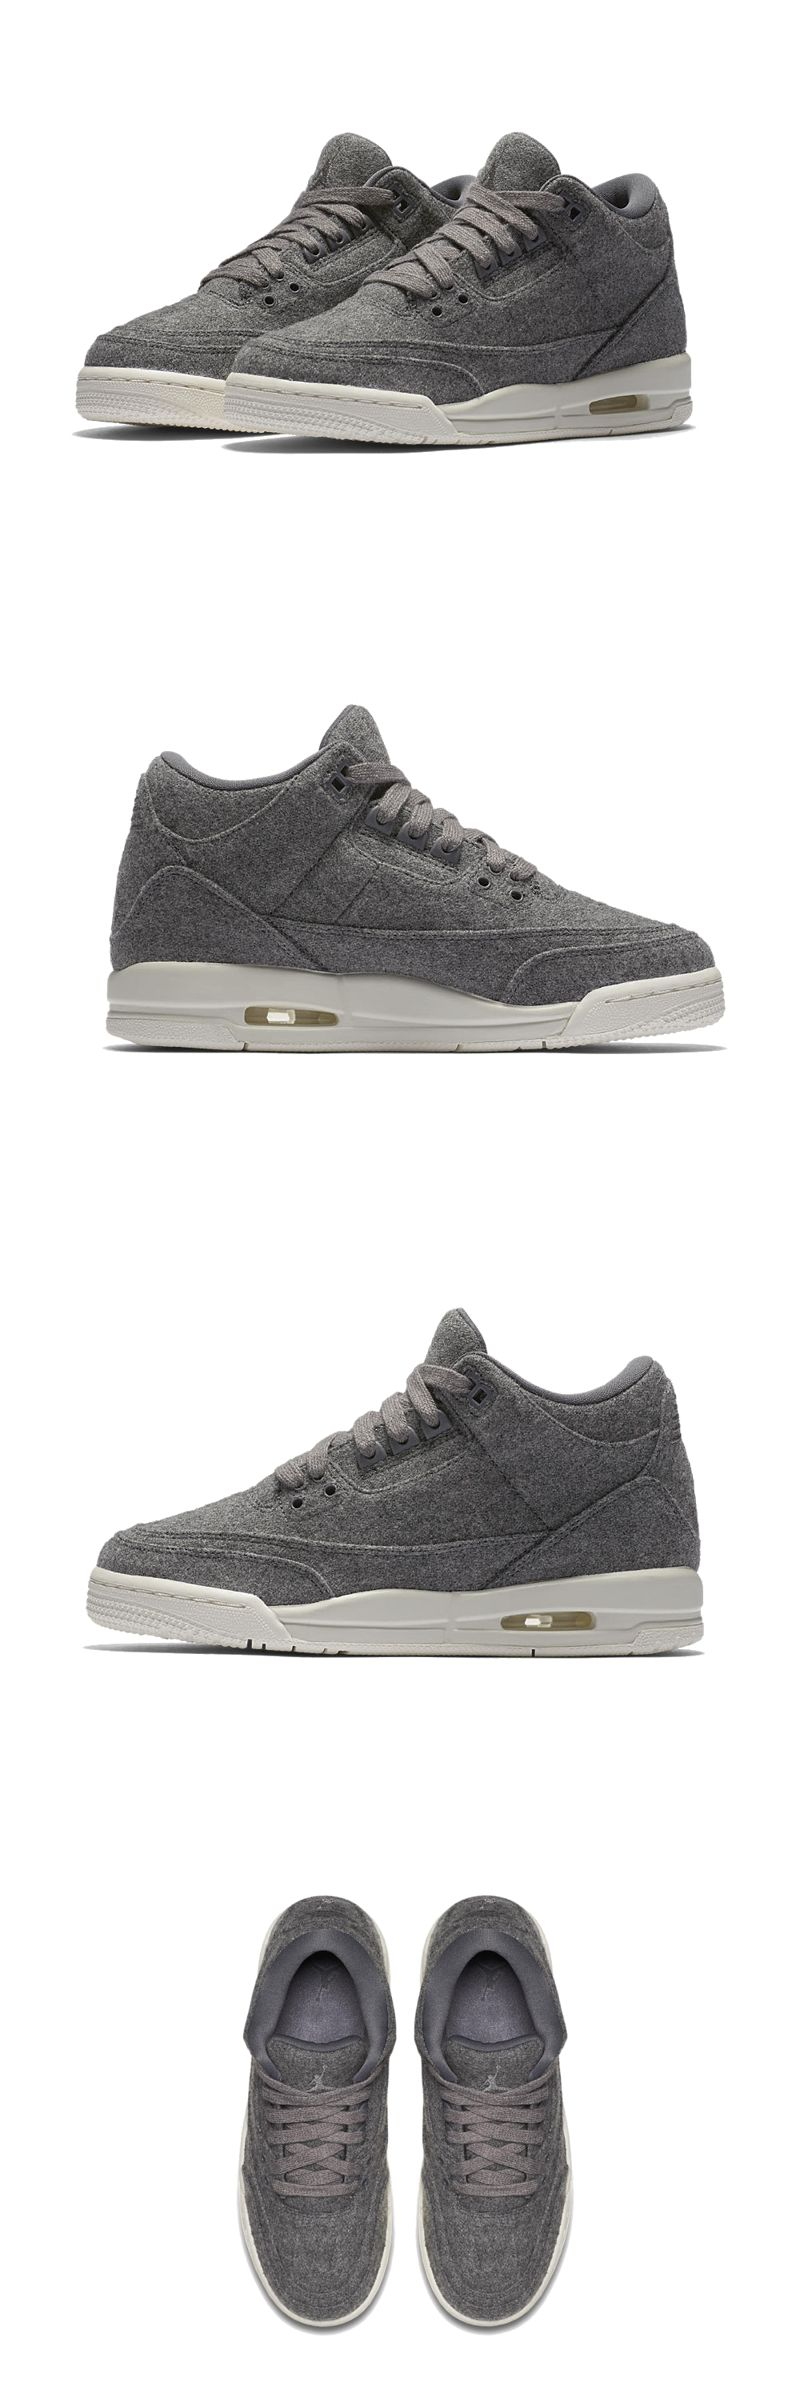 056ab0ed57d0e4 Boys Shoes 57929  Boys Air Jordan 3 Retro Wool Bg 861427-004 Darck Grey